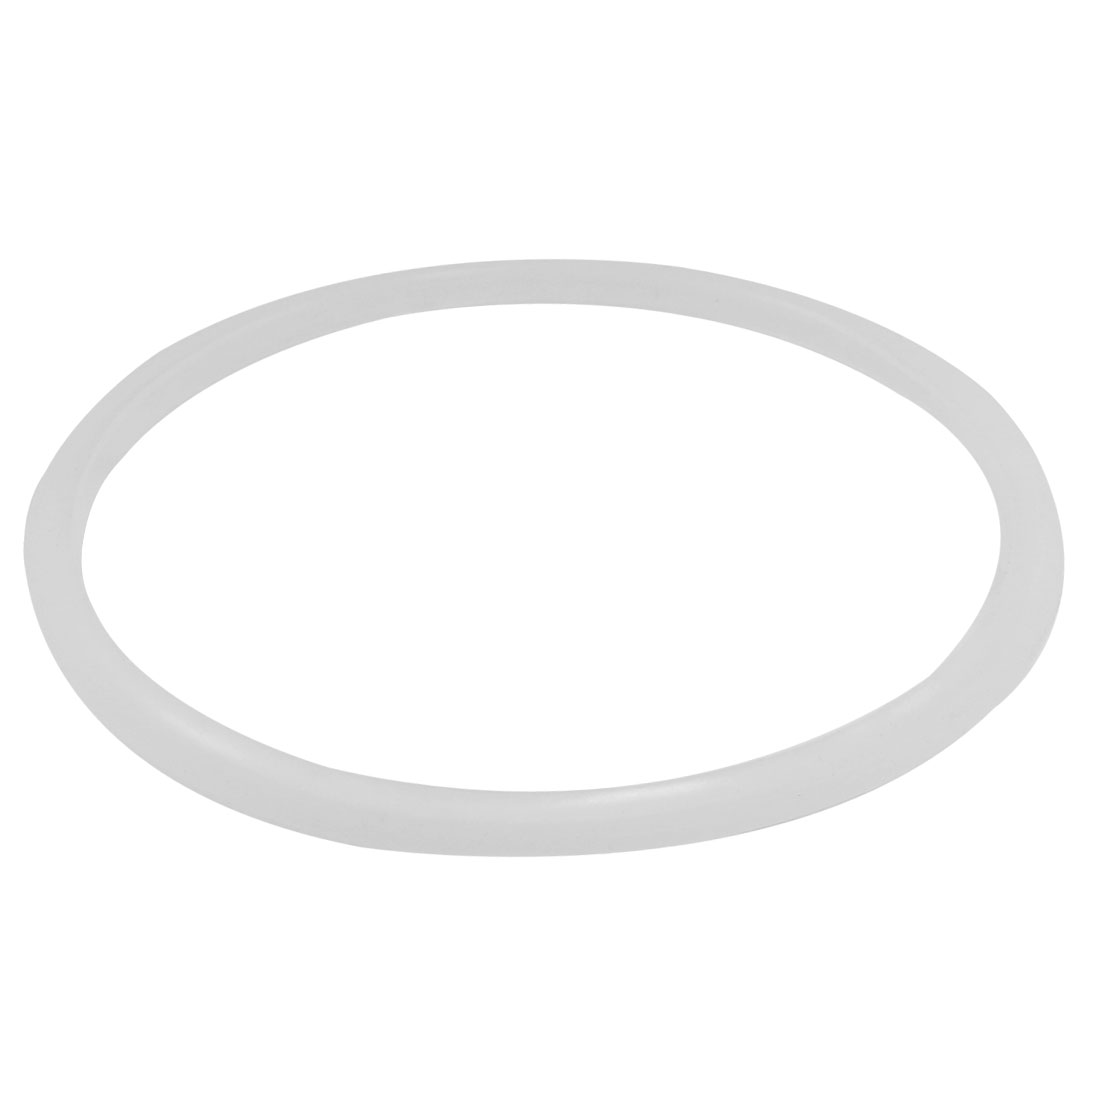 Kitchen Rubber Pressure Cooker Seal Sealing Ring Clear White 18cmx20cm